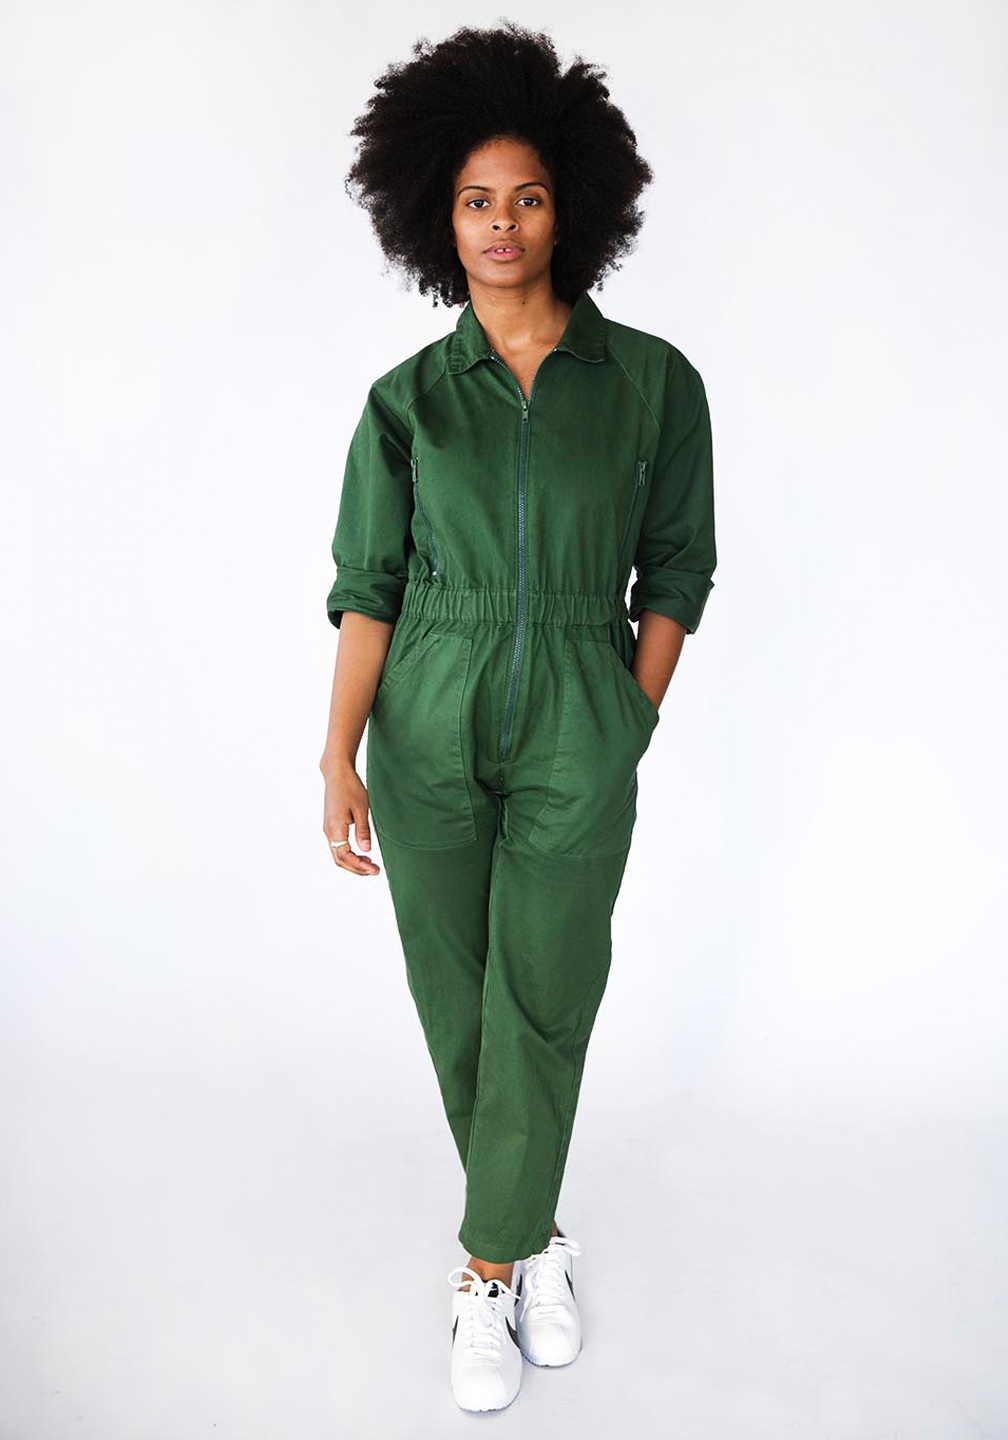 Margot_And_Ed_All_In_Flightsuit_Native_Green_Rotator